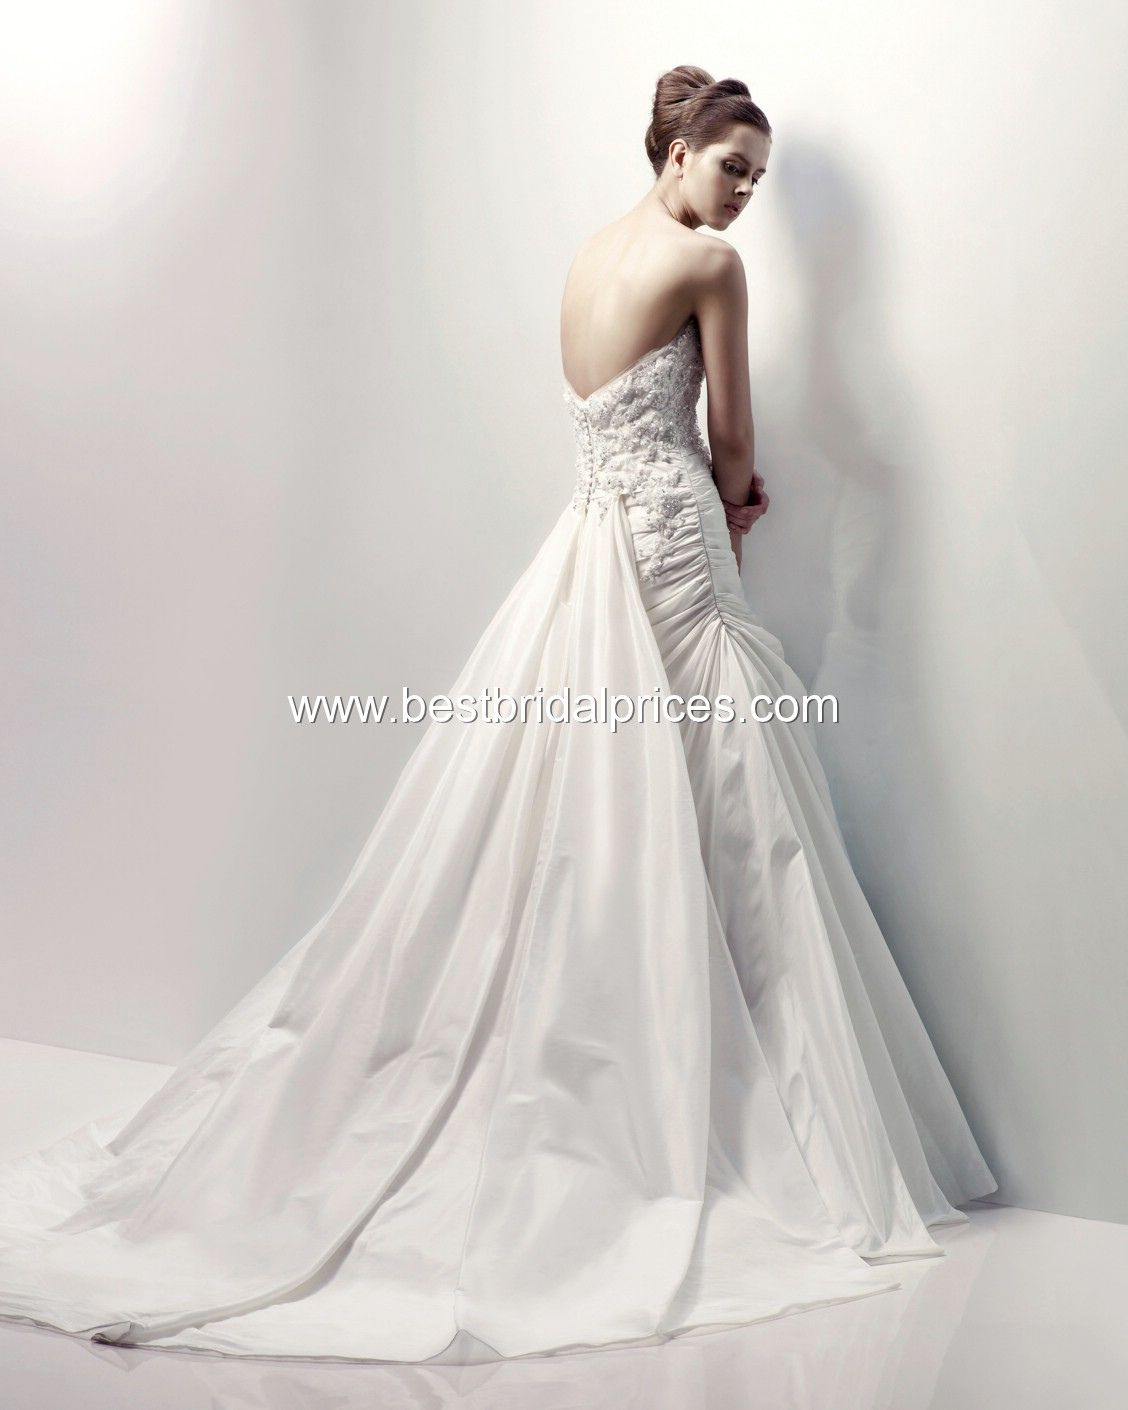 How much to alter wedding dress   Wedding Dress Alterations Calgary  Cold Shoulder Dresses for